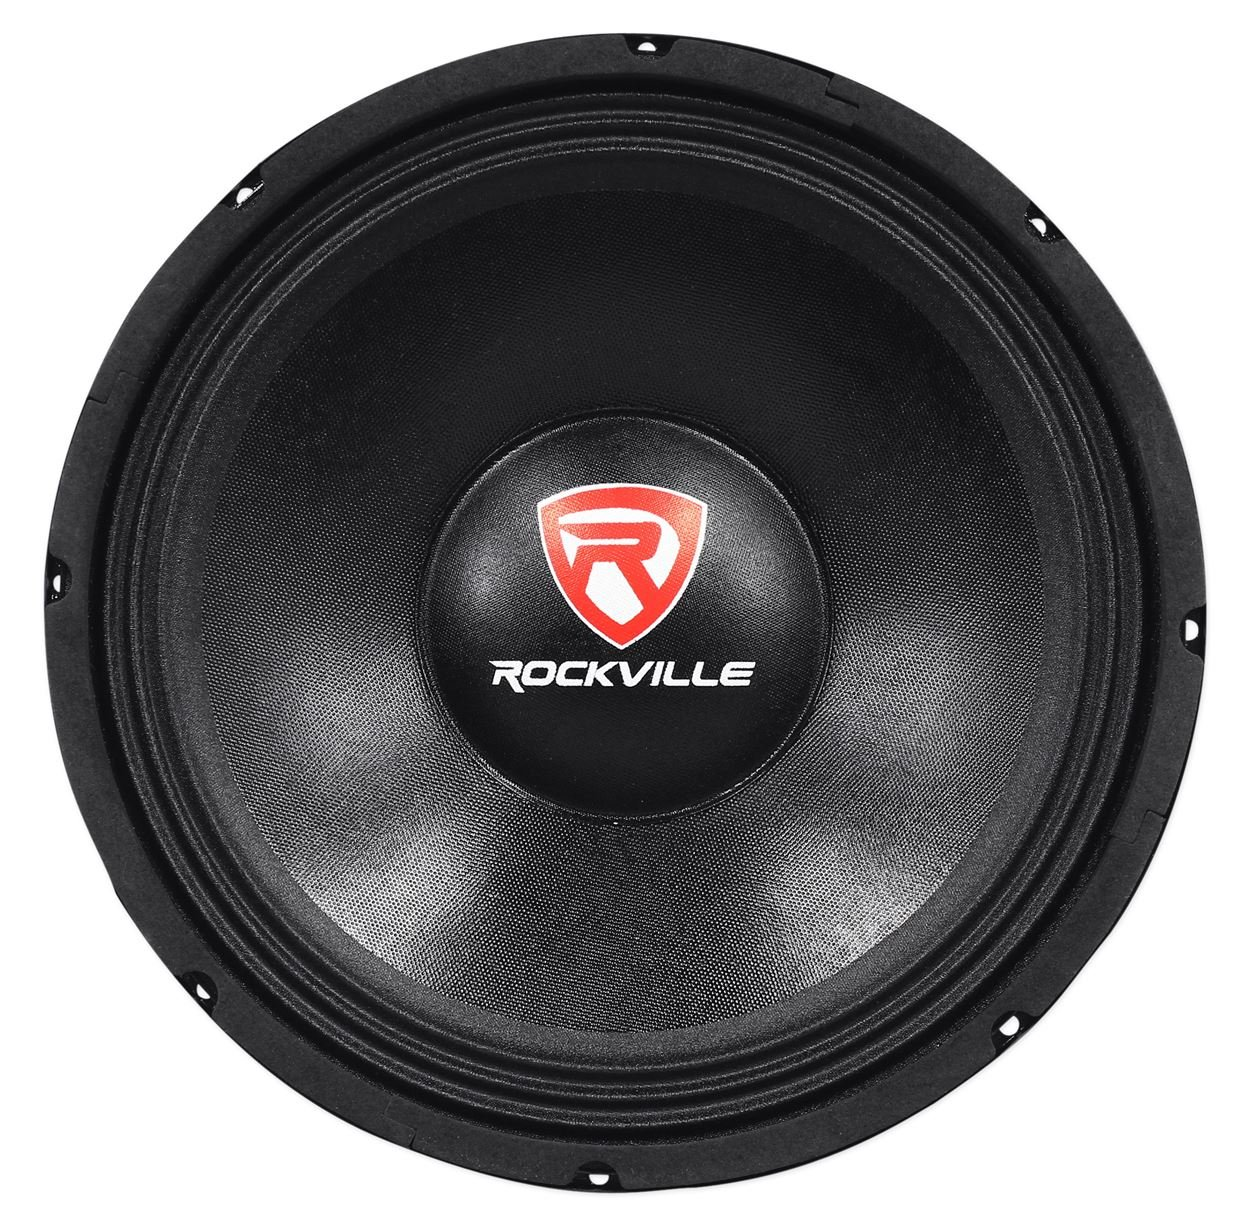 Rockville RVP12W4 600 Watt 12 Raw Replacement DJ PA Subwoofer 4 Ohm Audiosavings